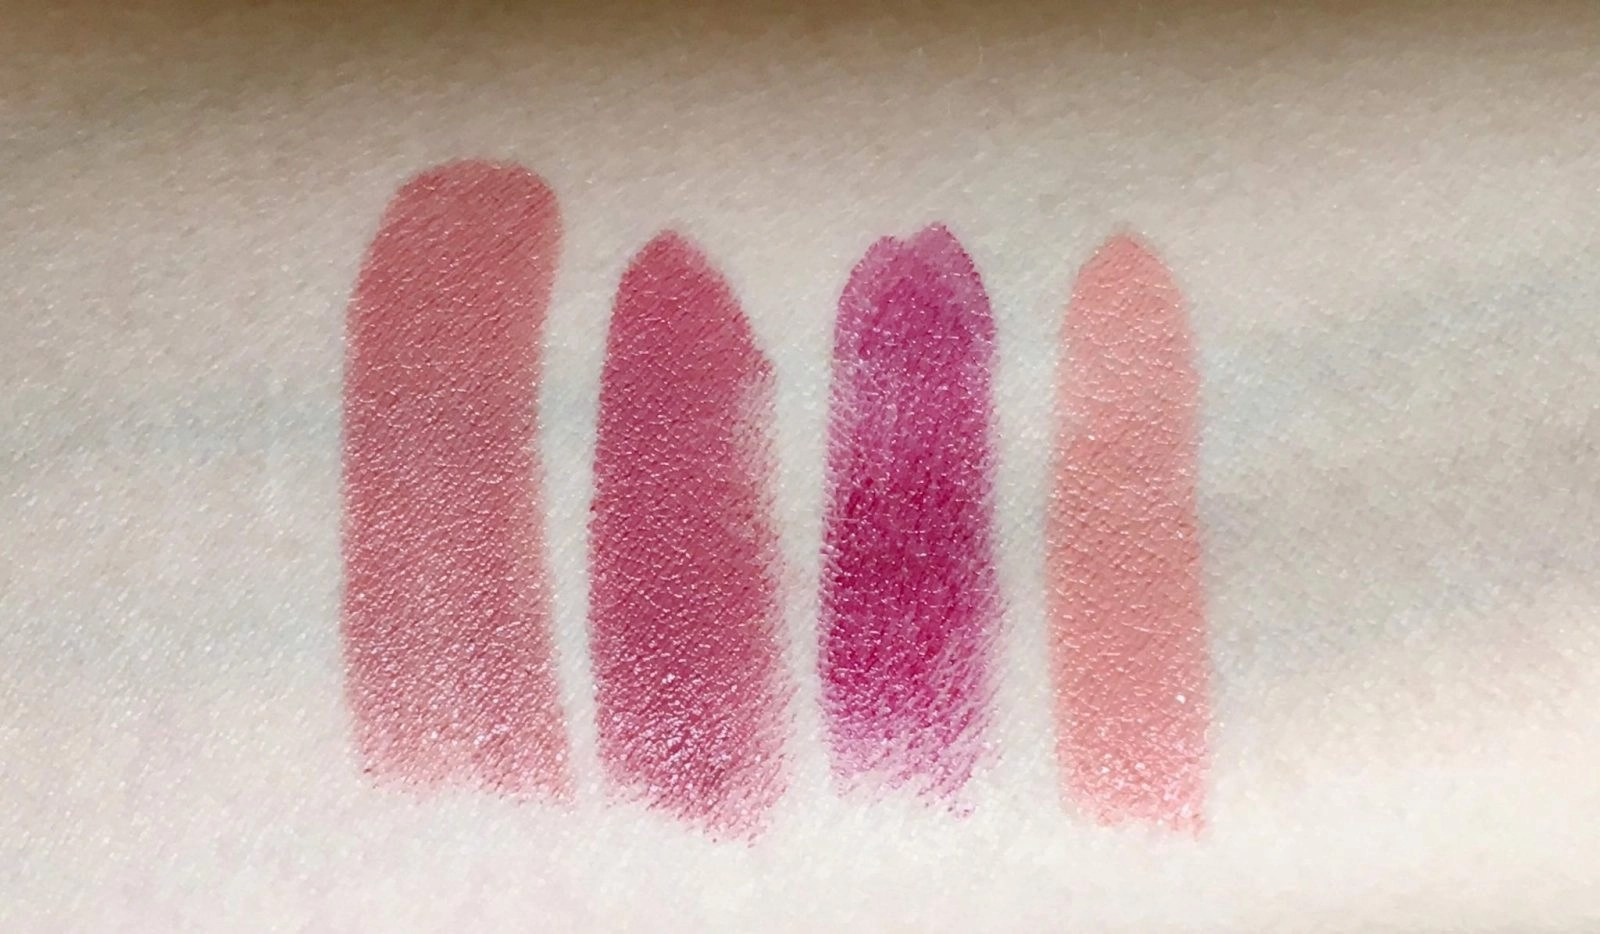 lipsticks swatched on the arm